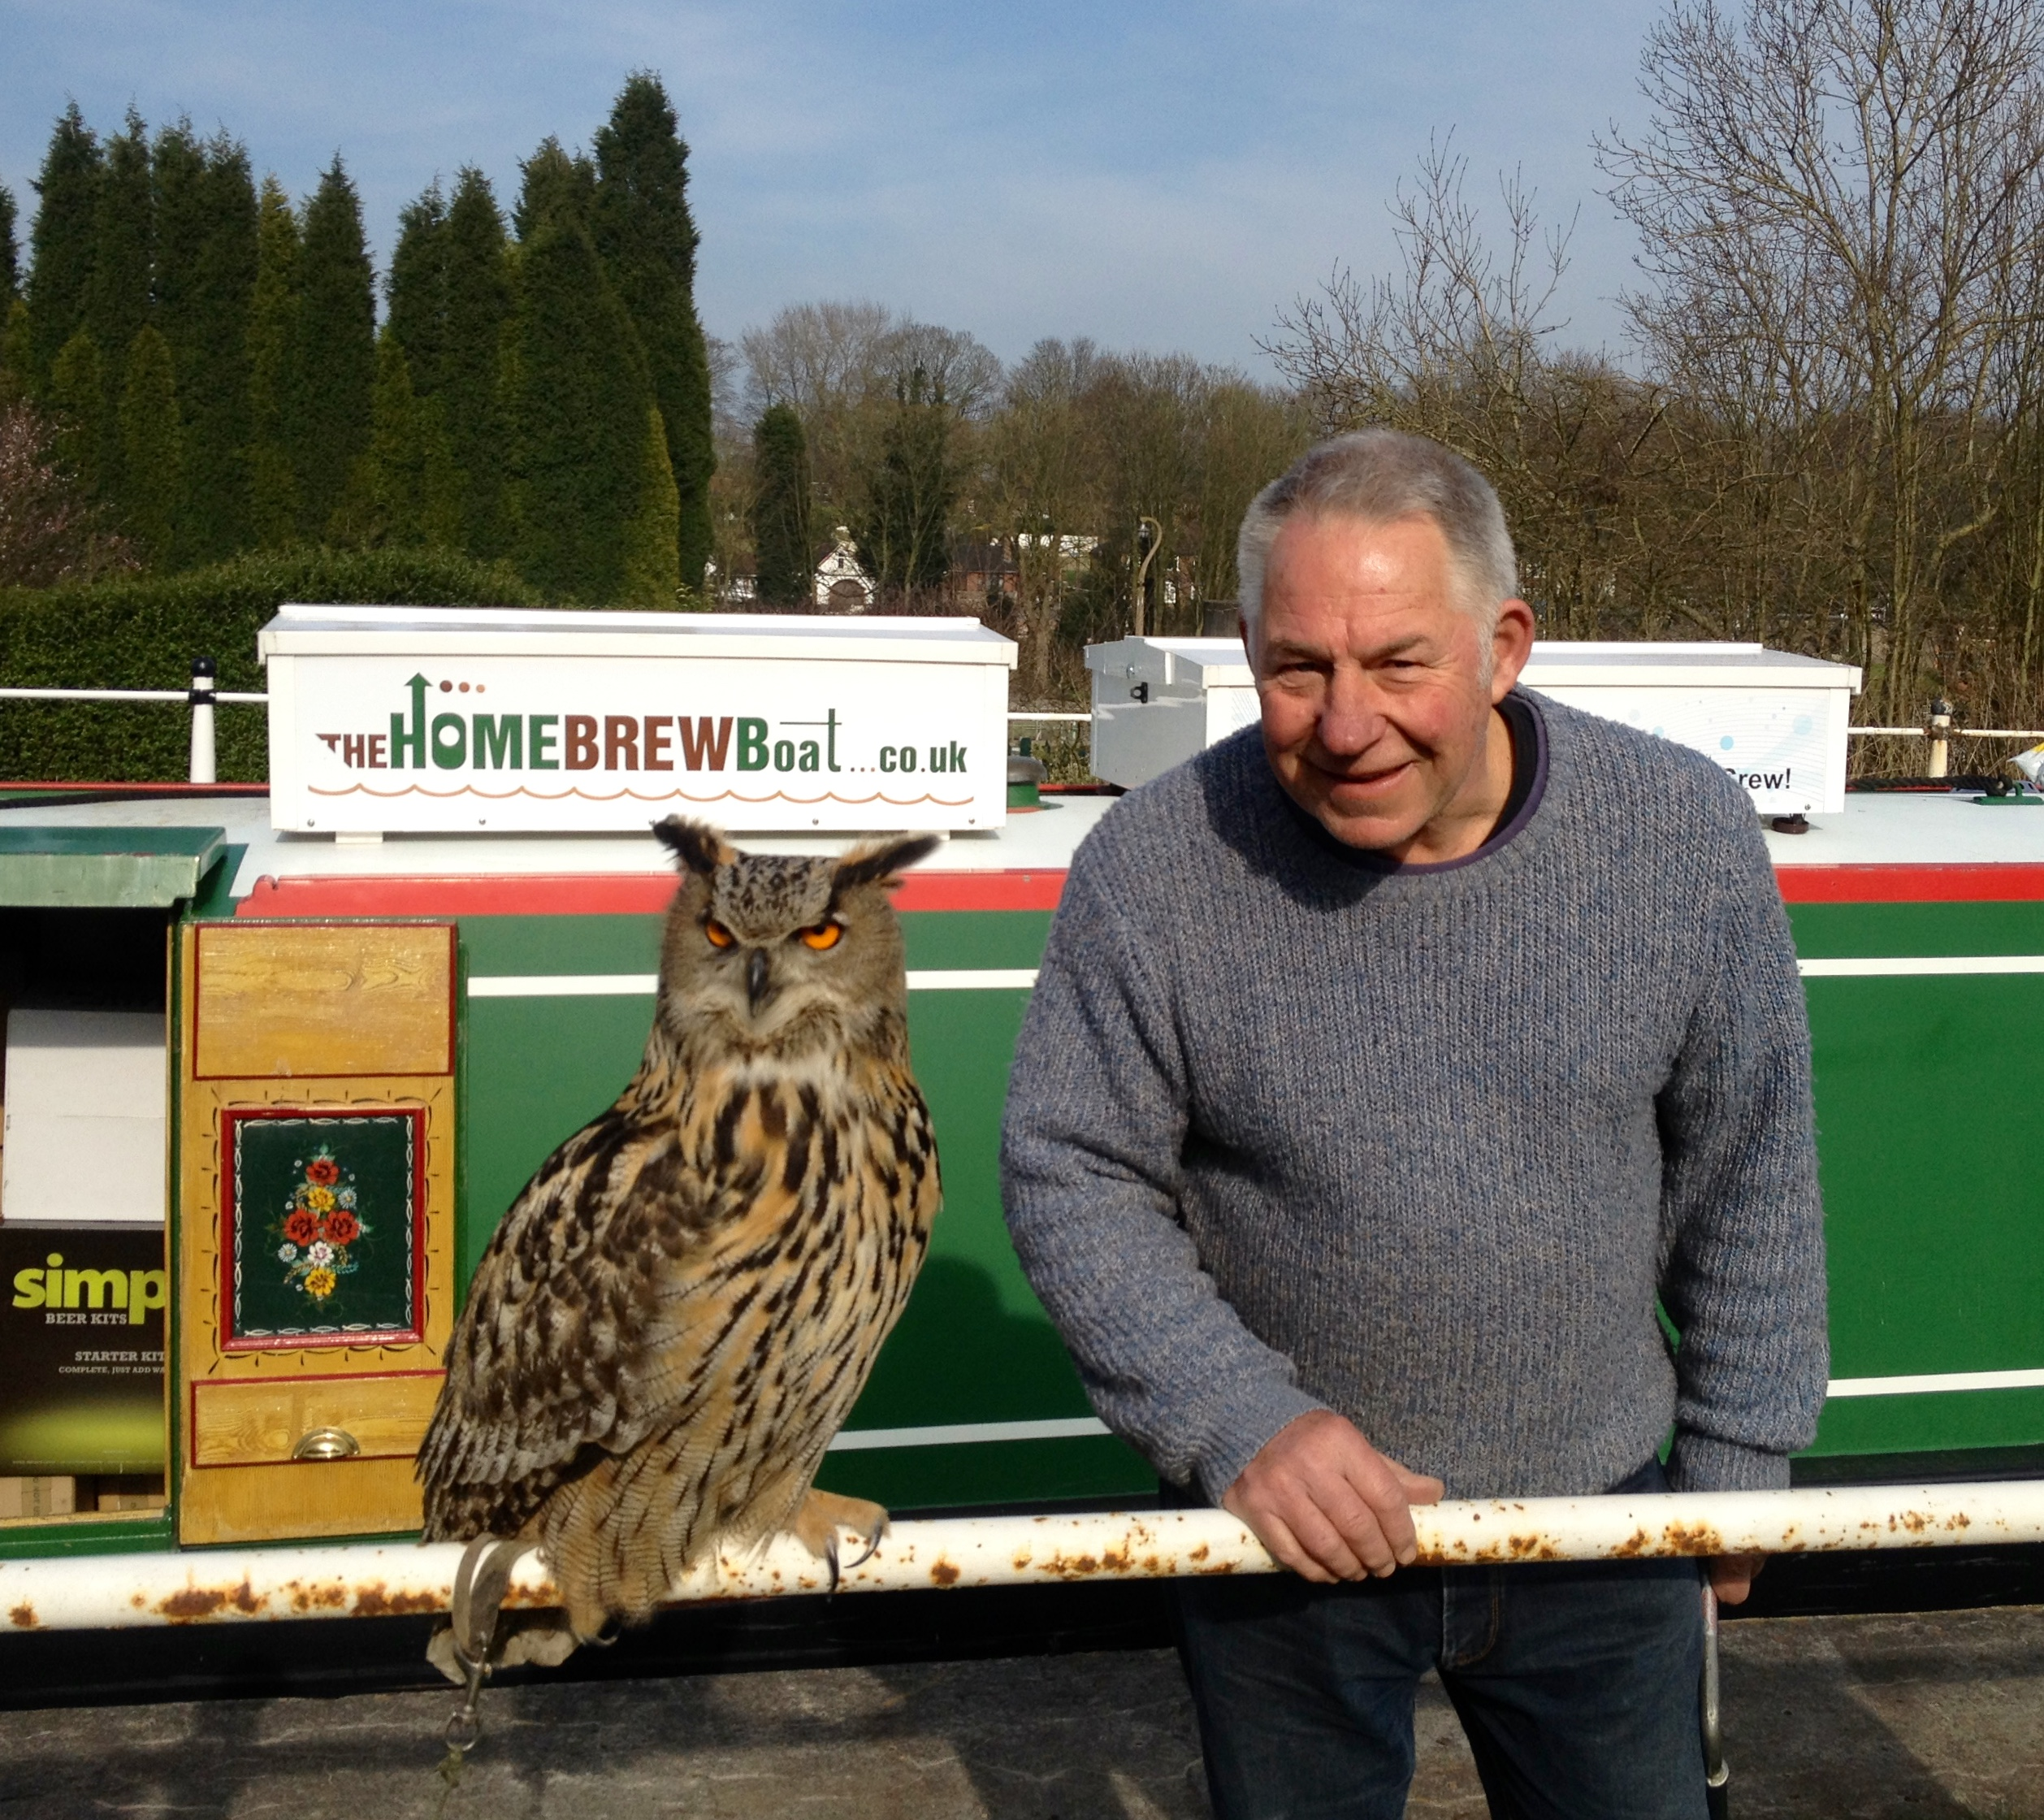 An owl and The Home Brew Boat at The Red Bull pub